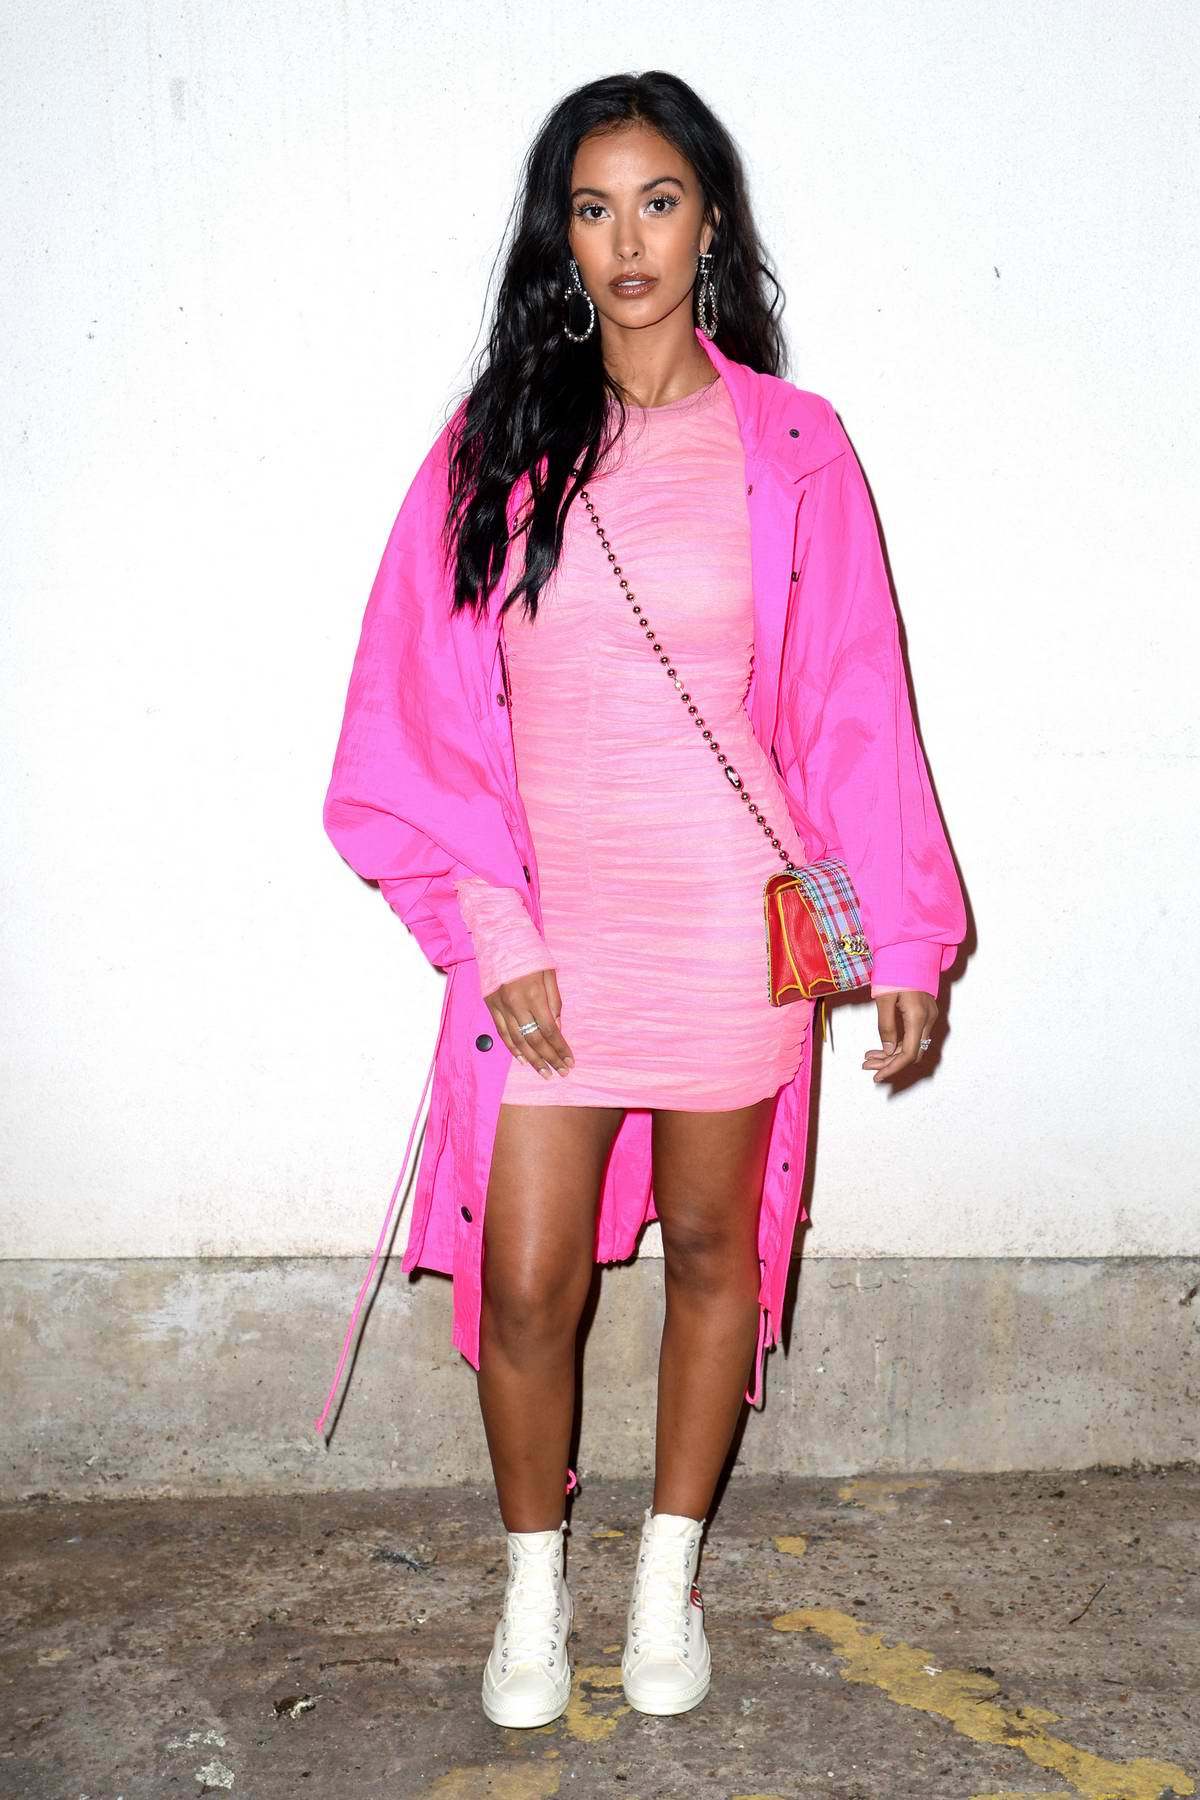 Maya Jama attends the House of Holland catwalk show during London Fashion Week in London, UK